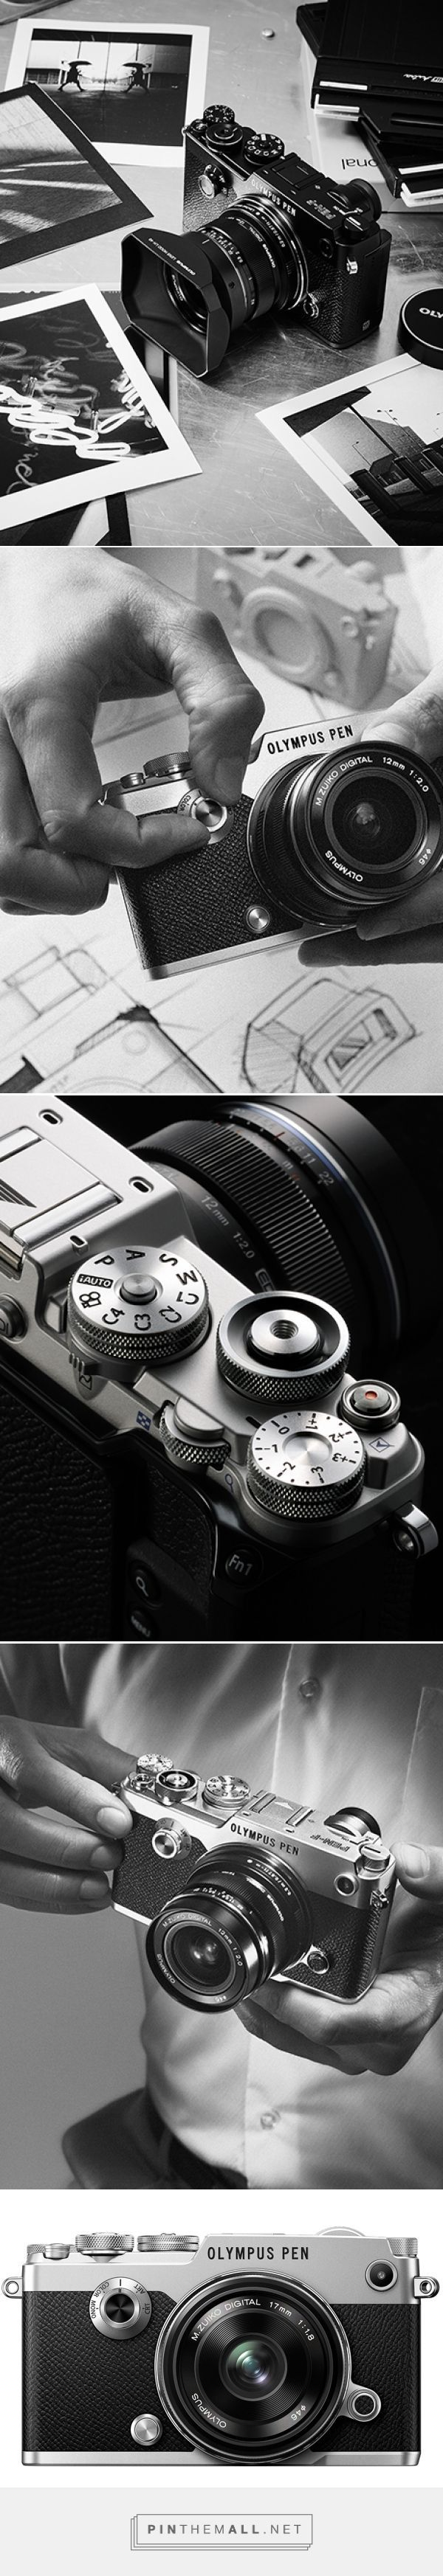 141 best photographers toolkit images on pinterest camera photo olympus pen f digital camera product design fandeluxe Gallery